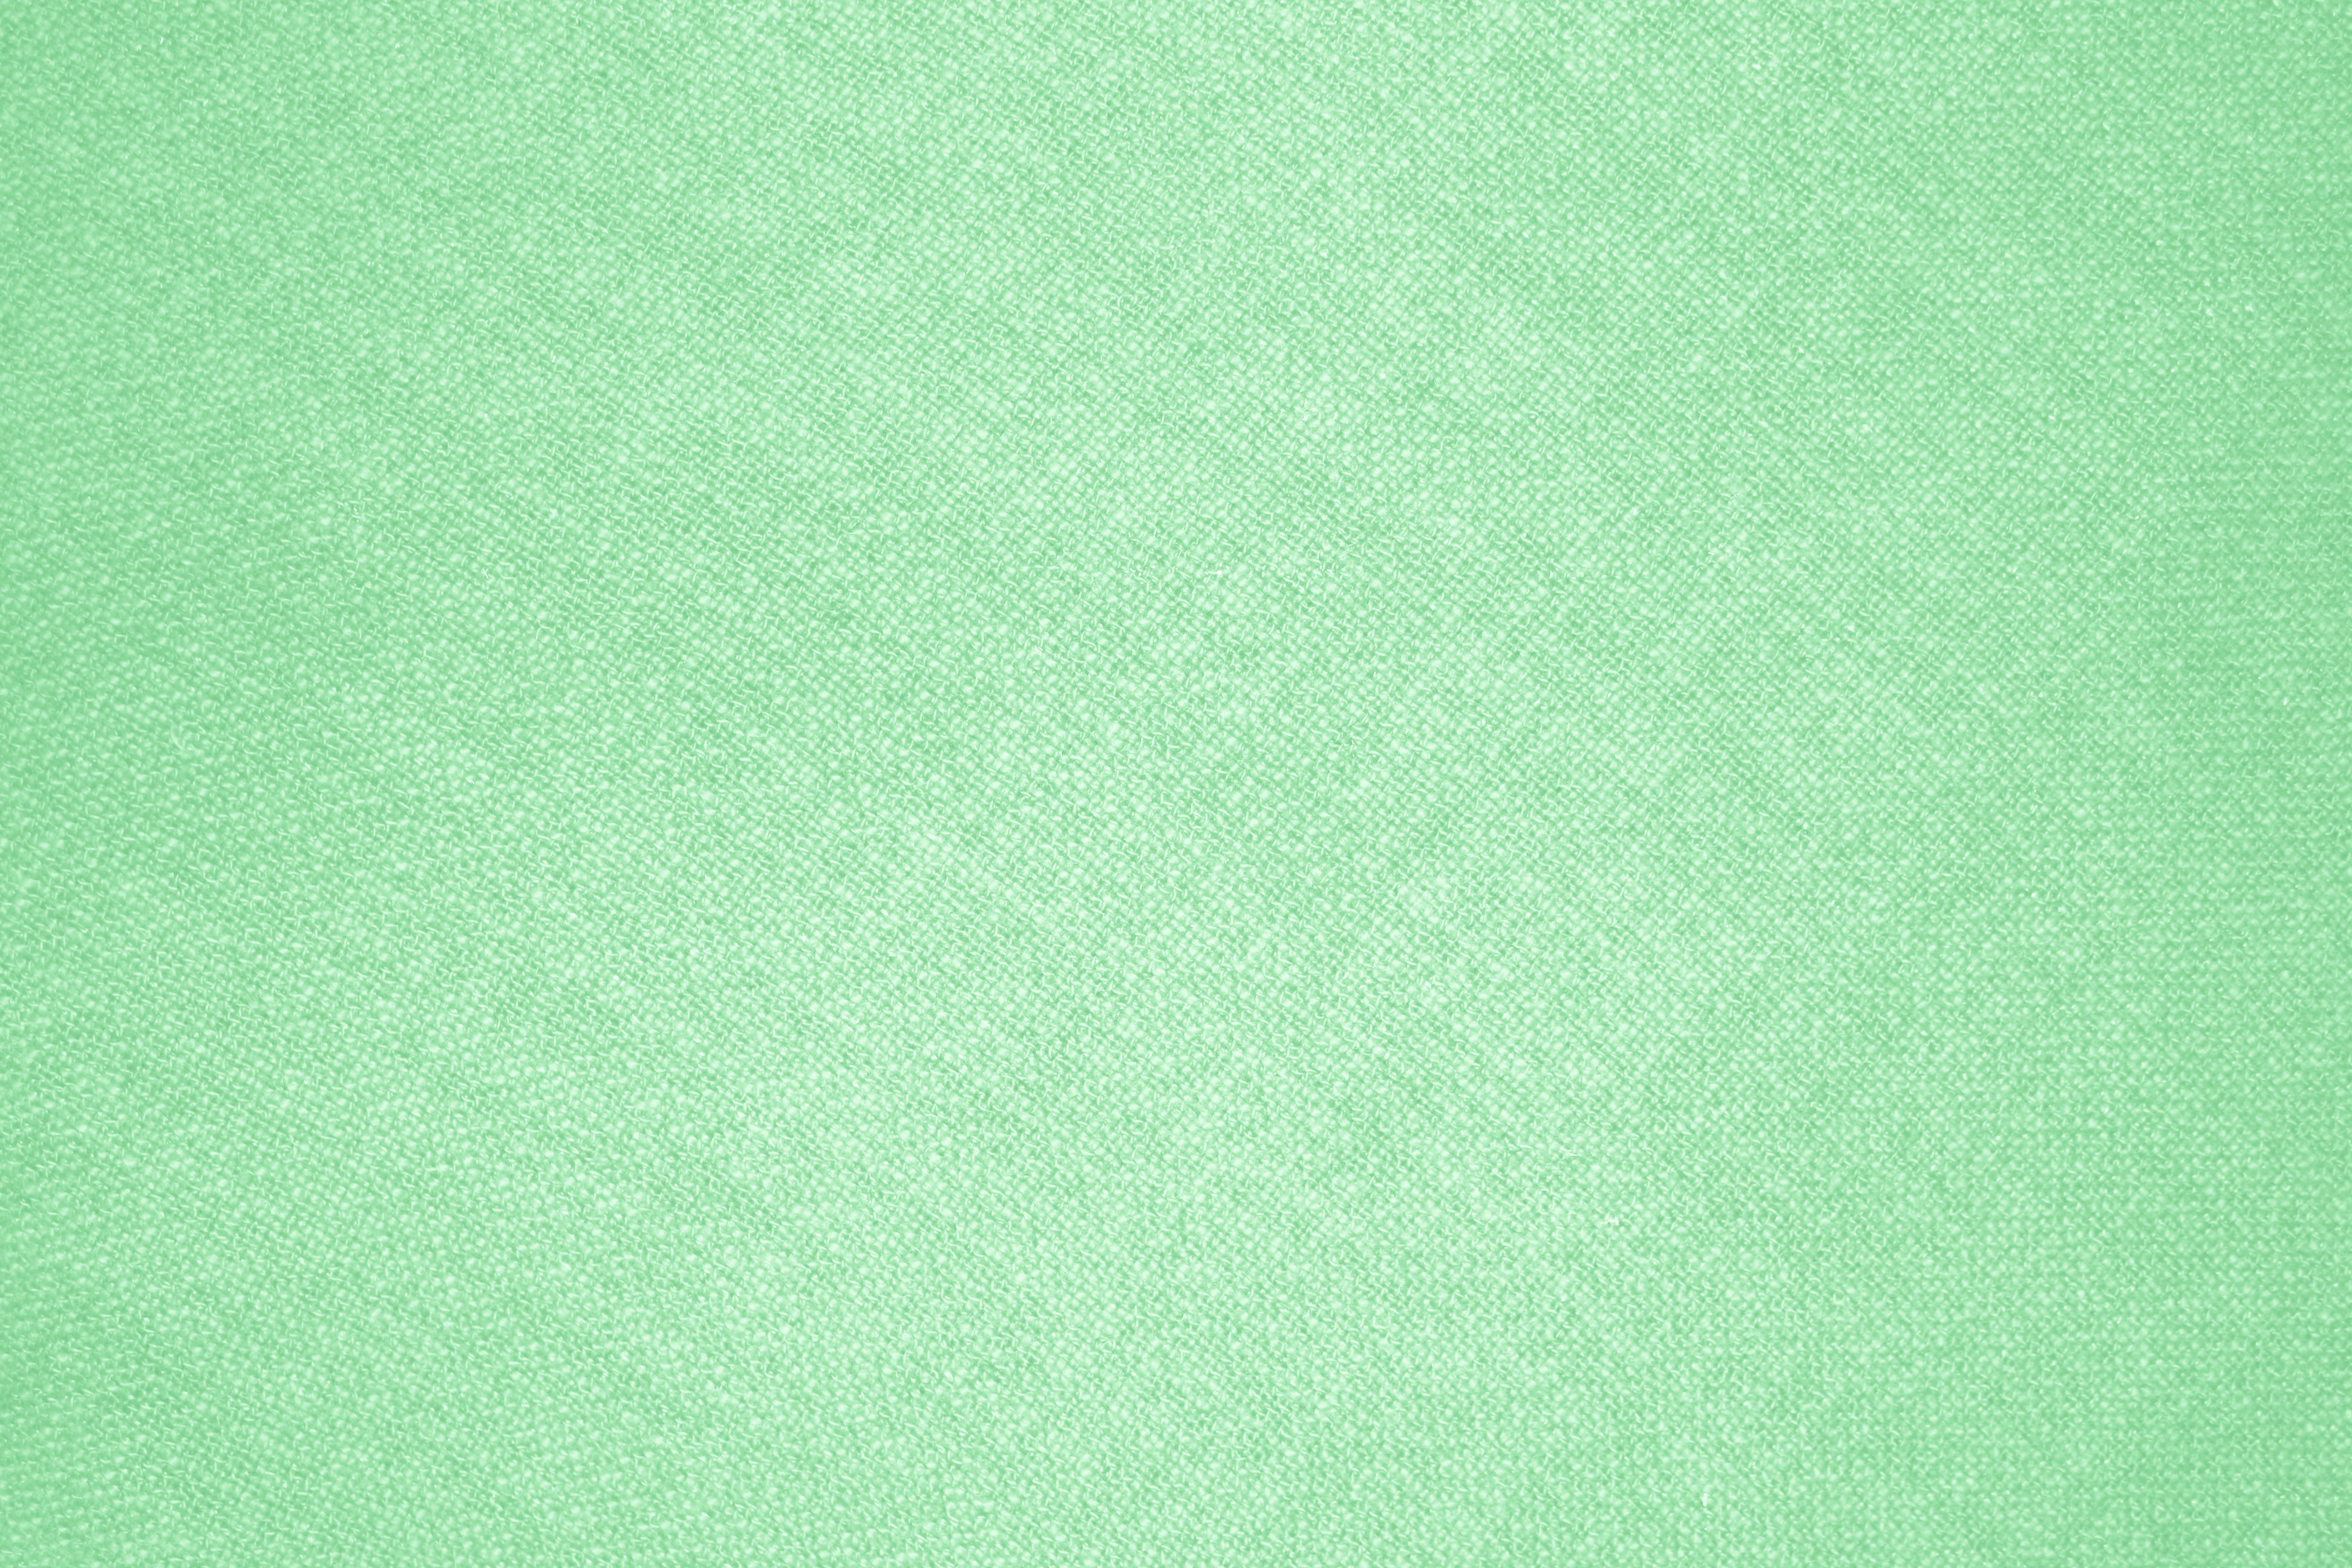 Light Green Fabric Texture Picture Photograph 3888x2592